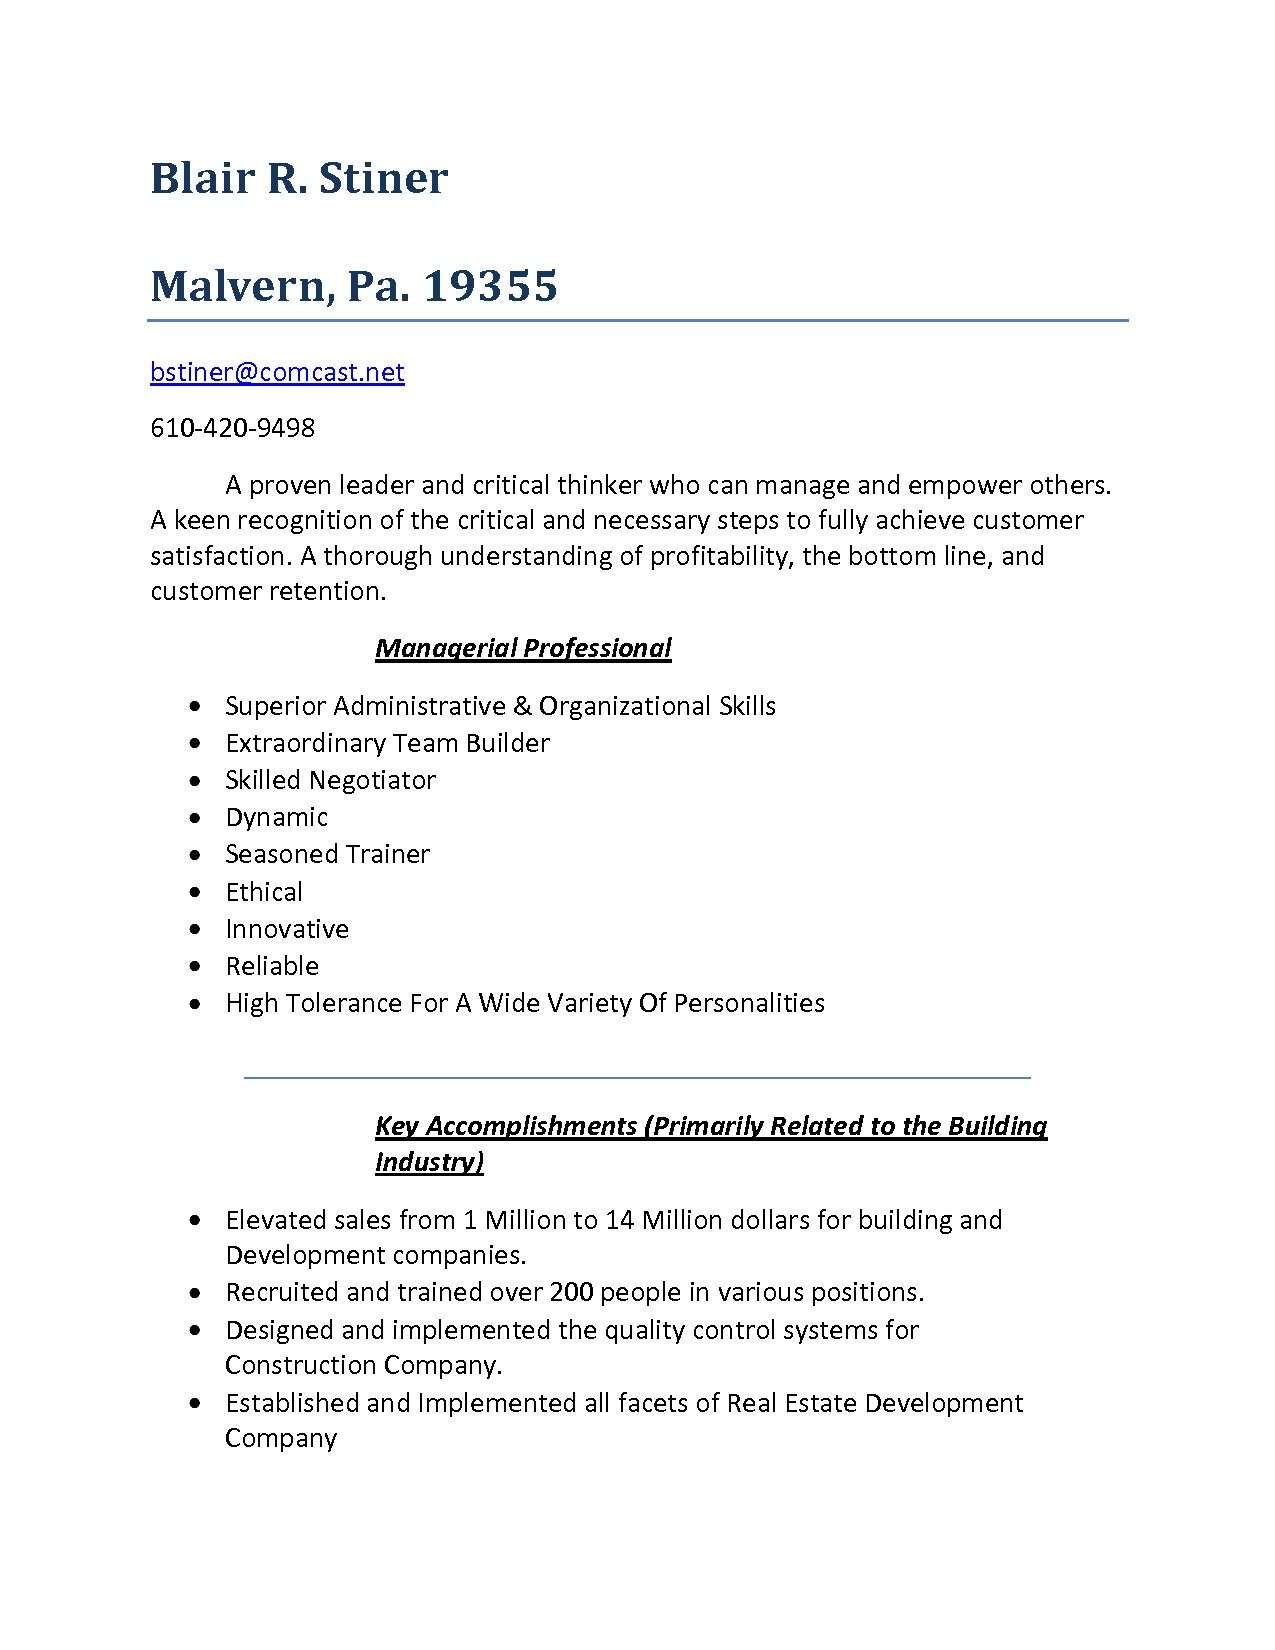 Personal Skills For Resume Personal Assistant Job Resume 9807e6b03  Example Of Personal Resume